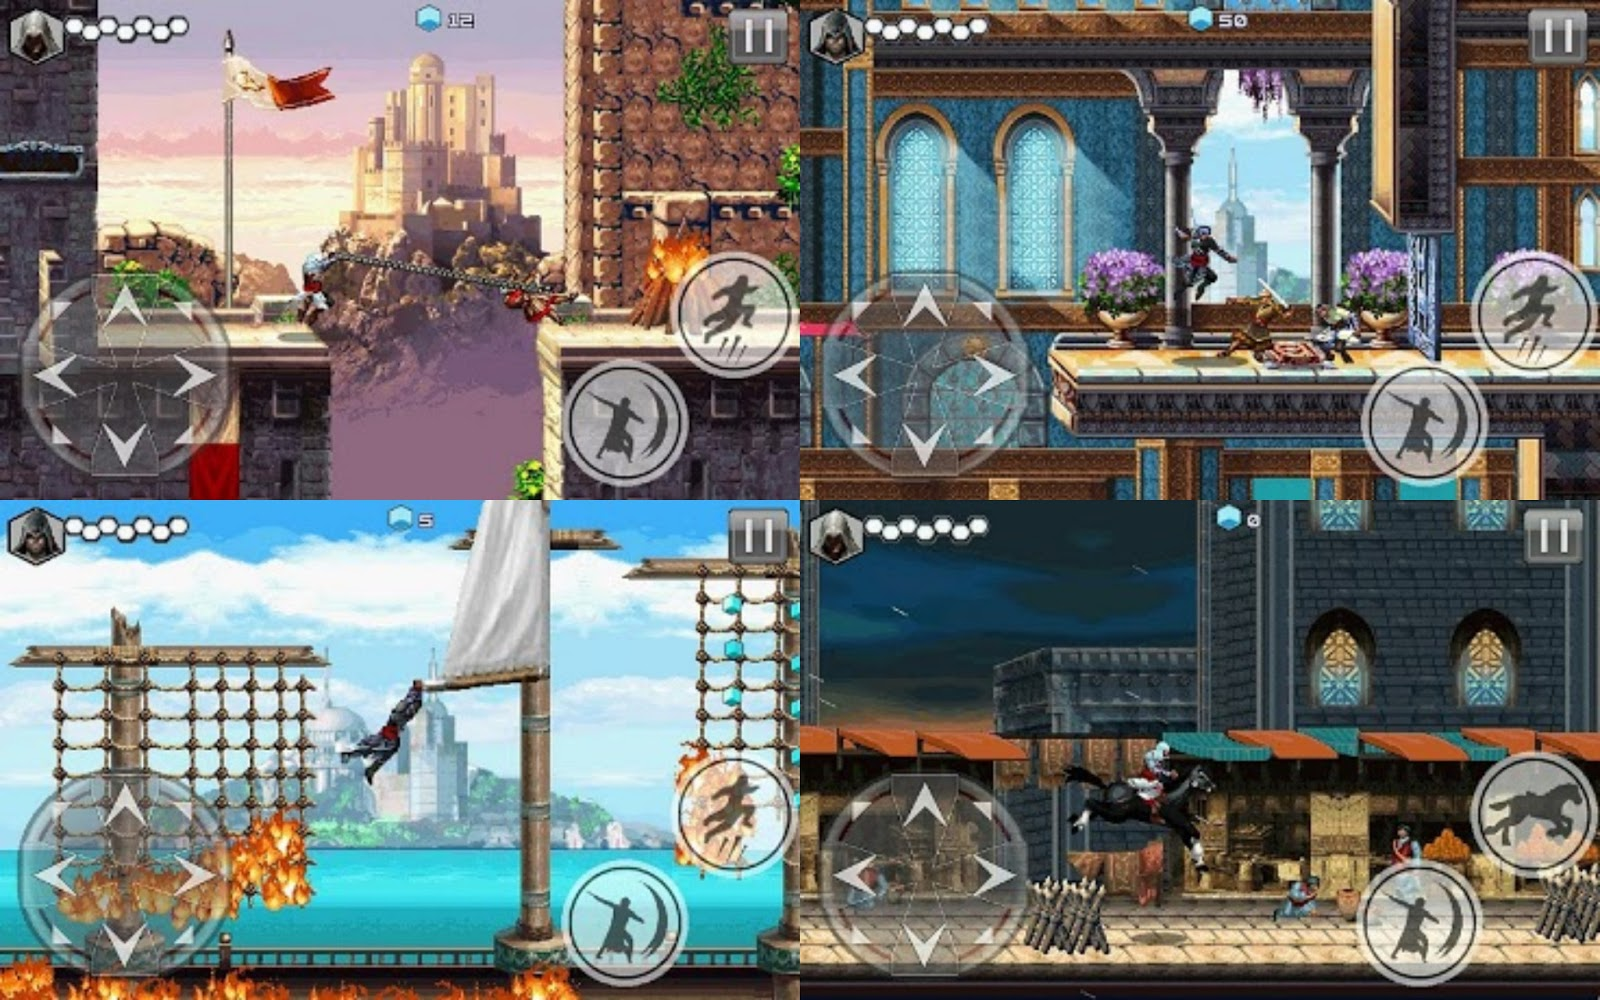 assassin creed game download for android free